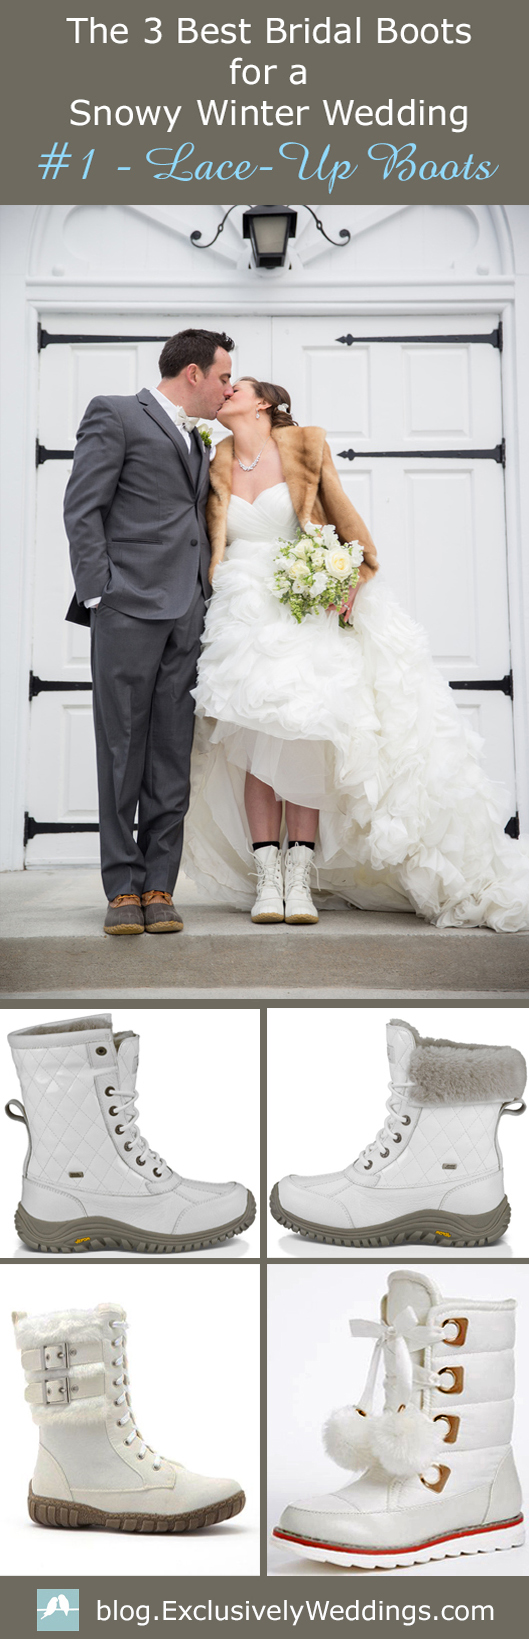 The_3_Best_Bridal_Boots_for_a_Snowy_Winter_Wedding_